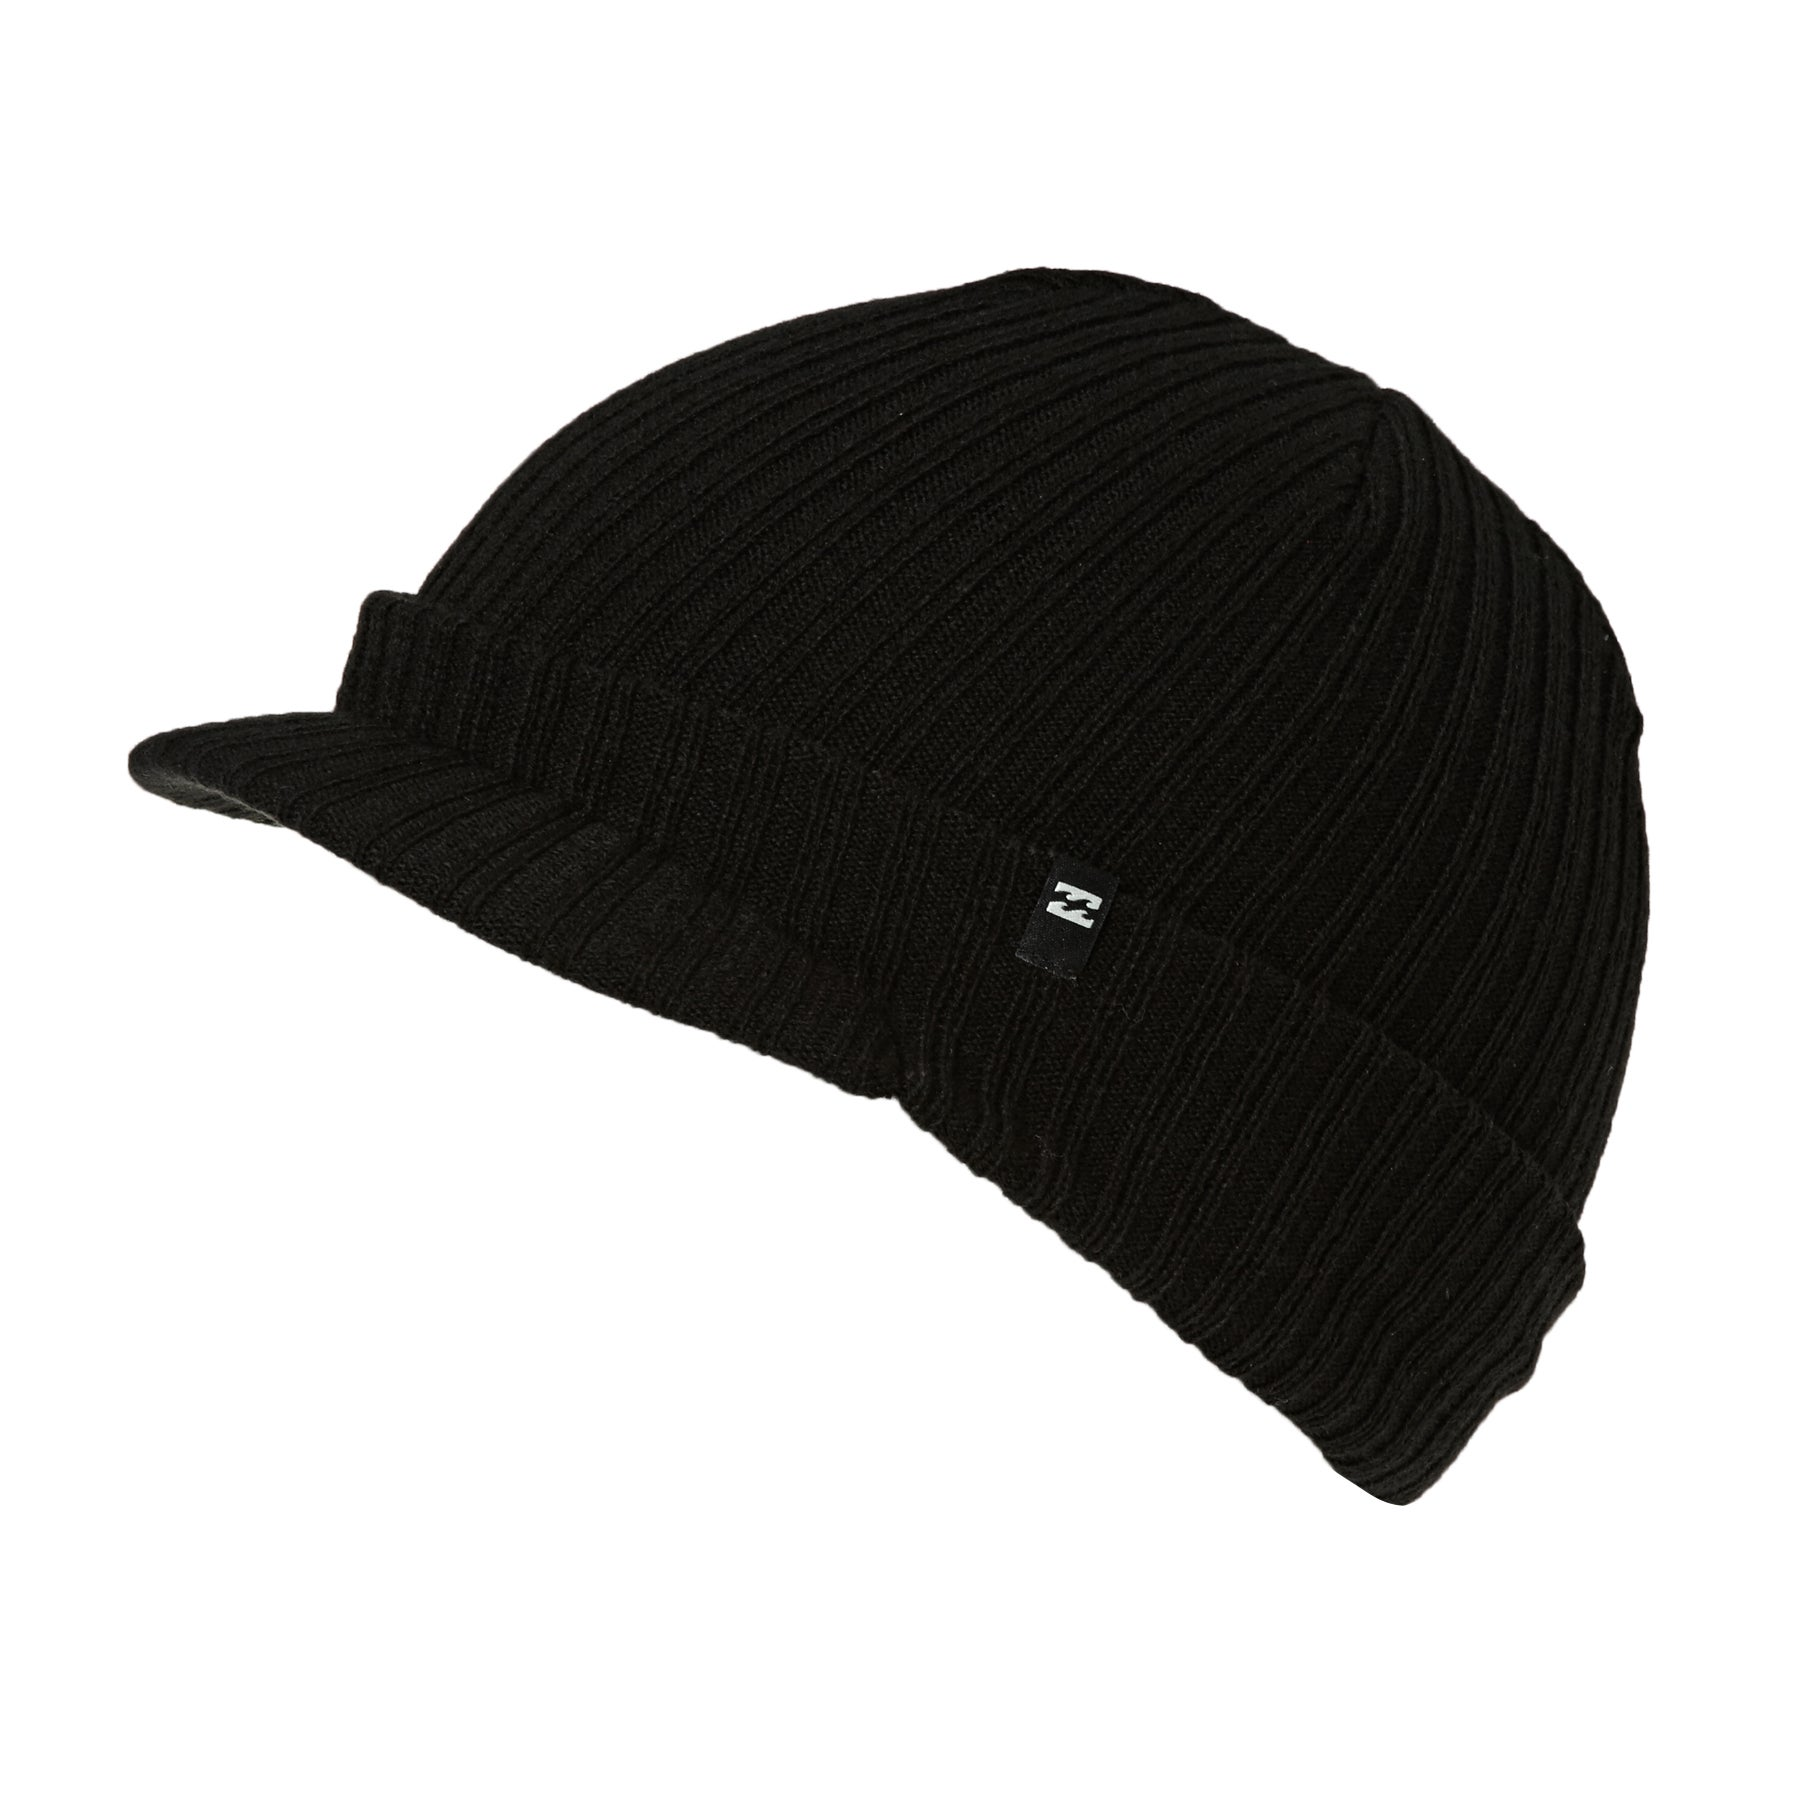 Berretto Billabong Arcade Brim - Black